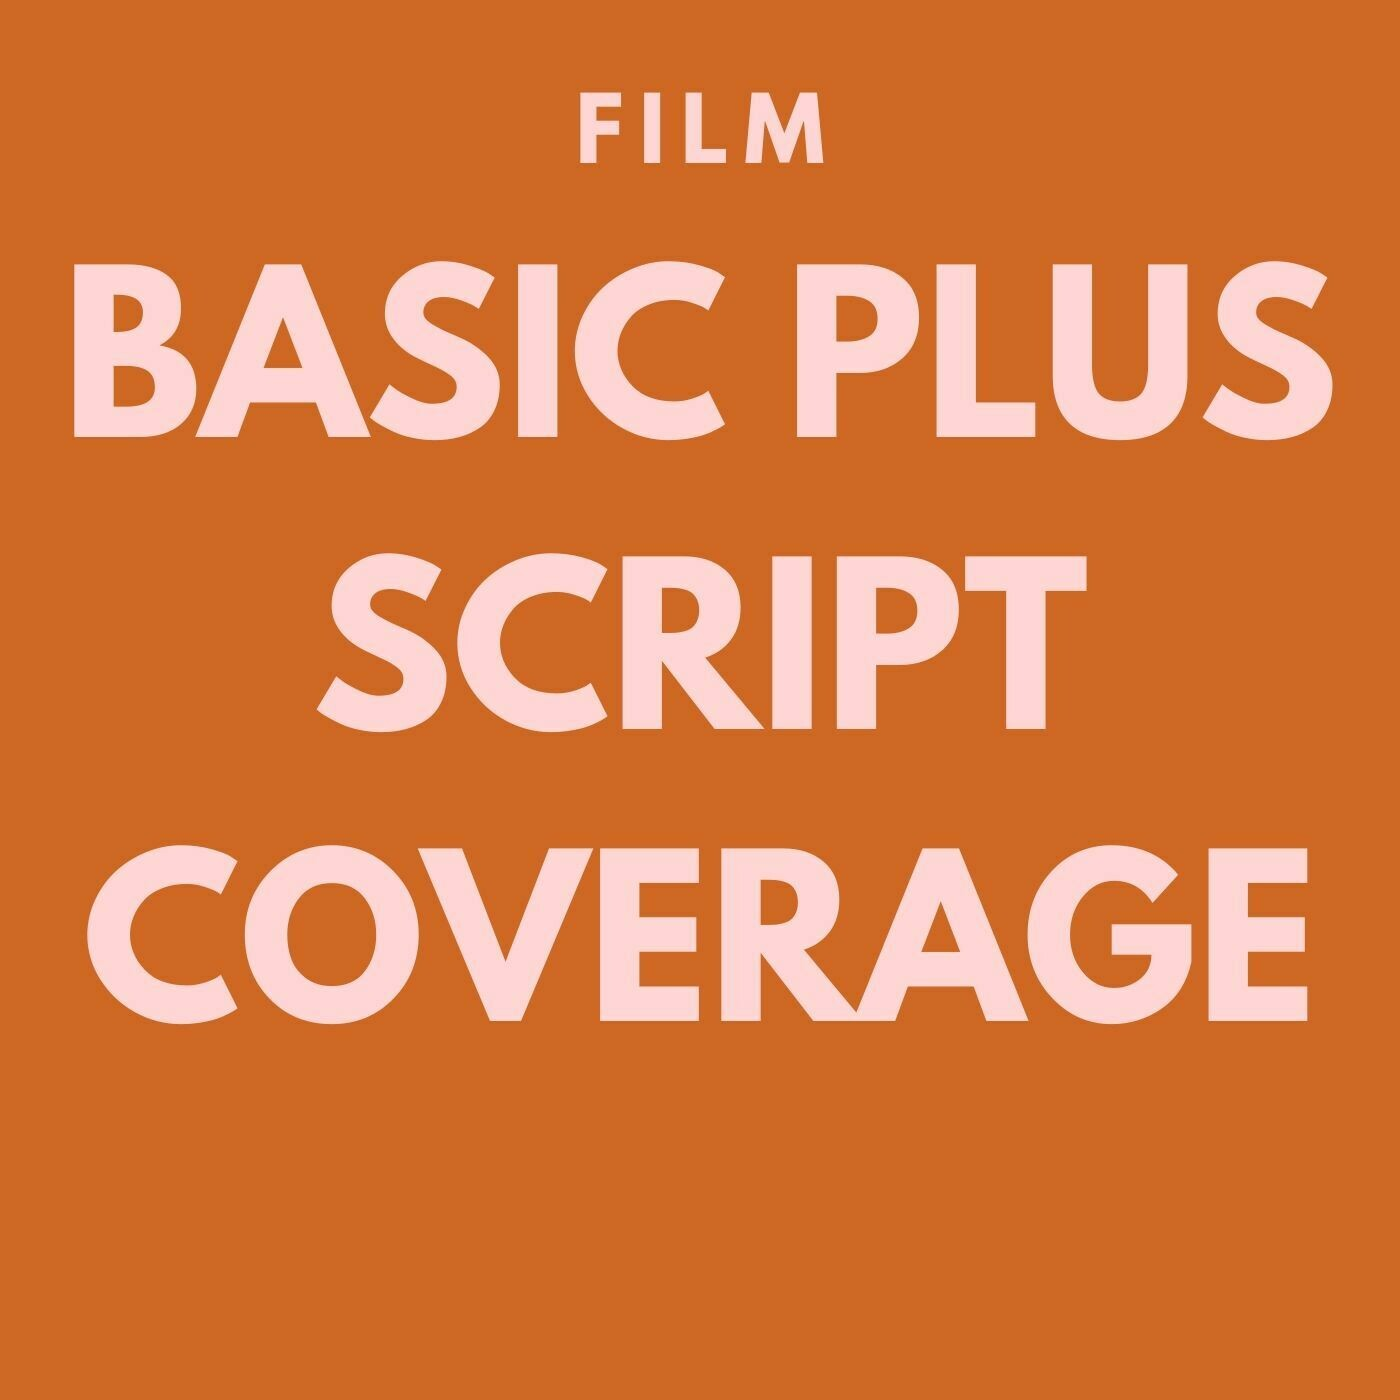 FILM - Basic Plus Script Coverage